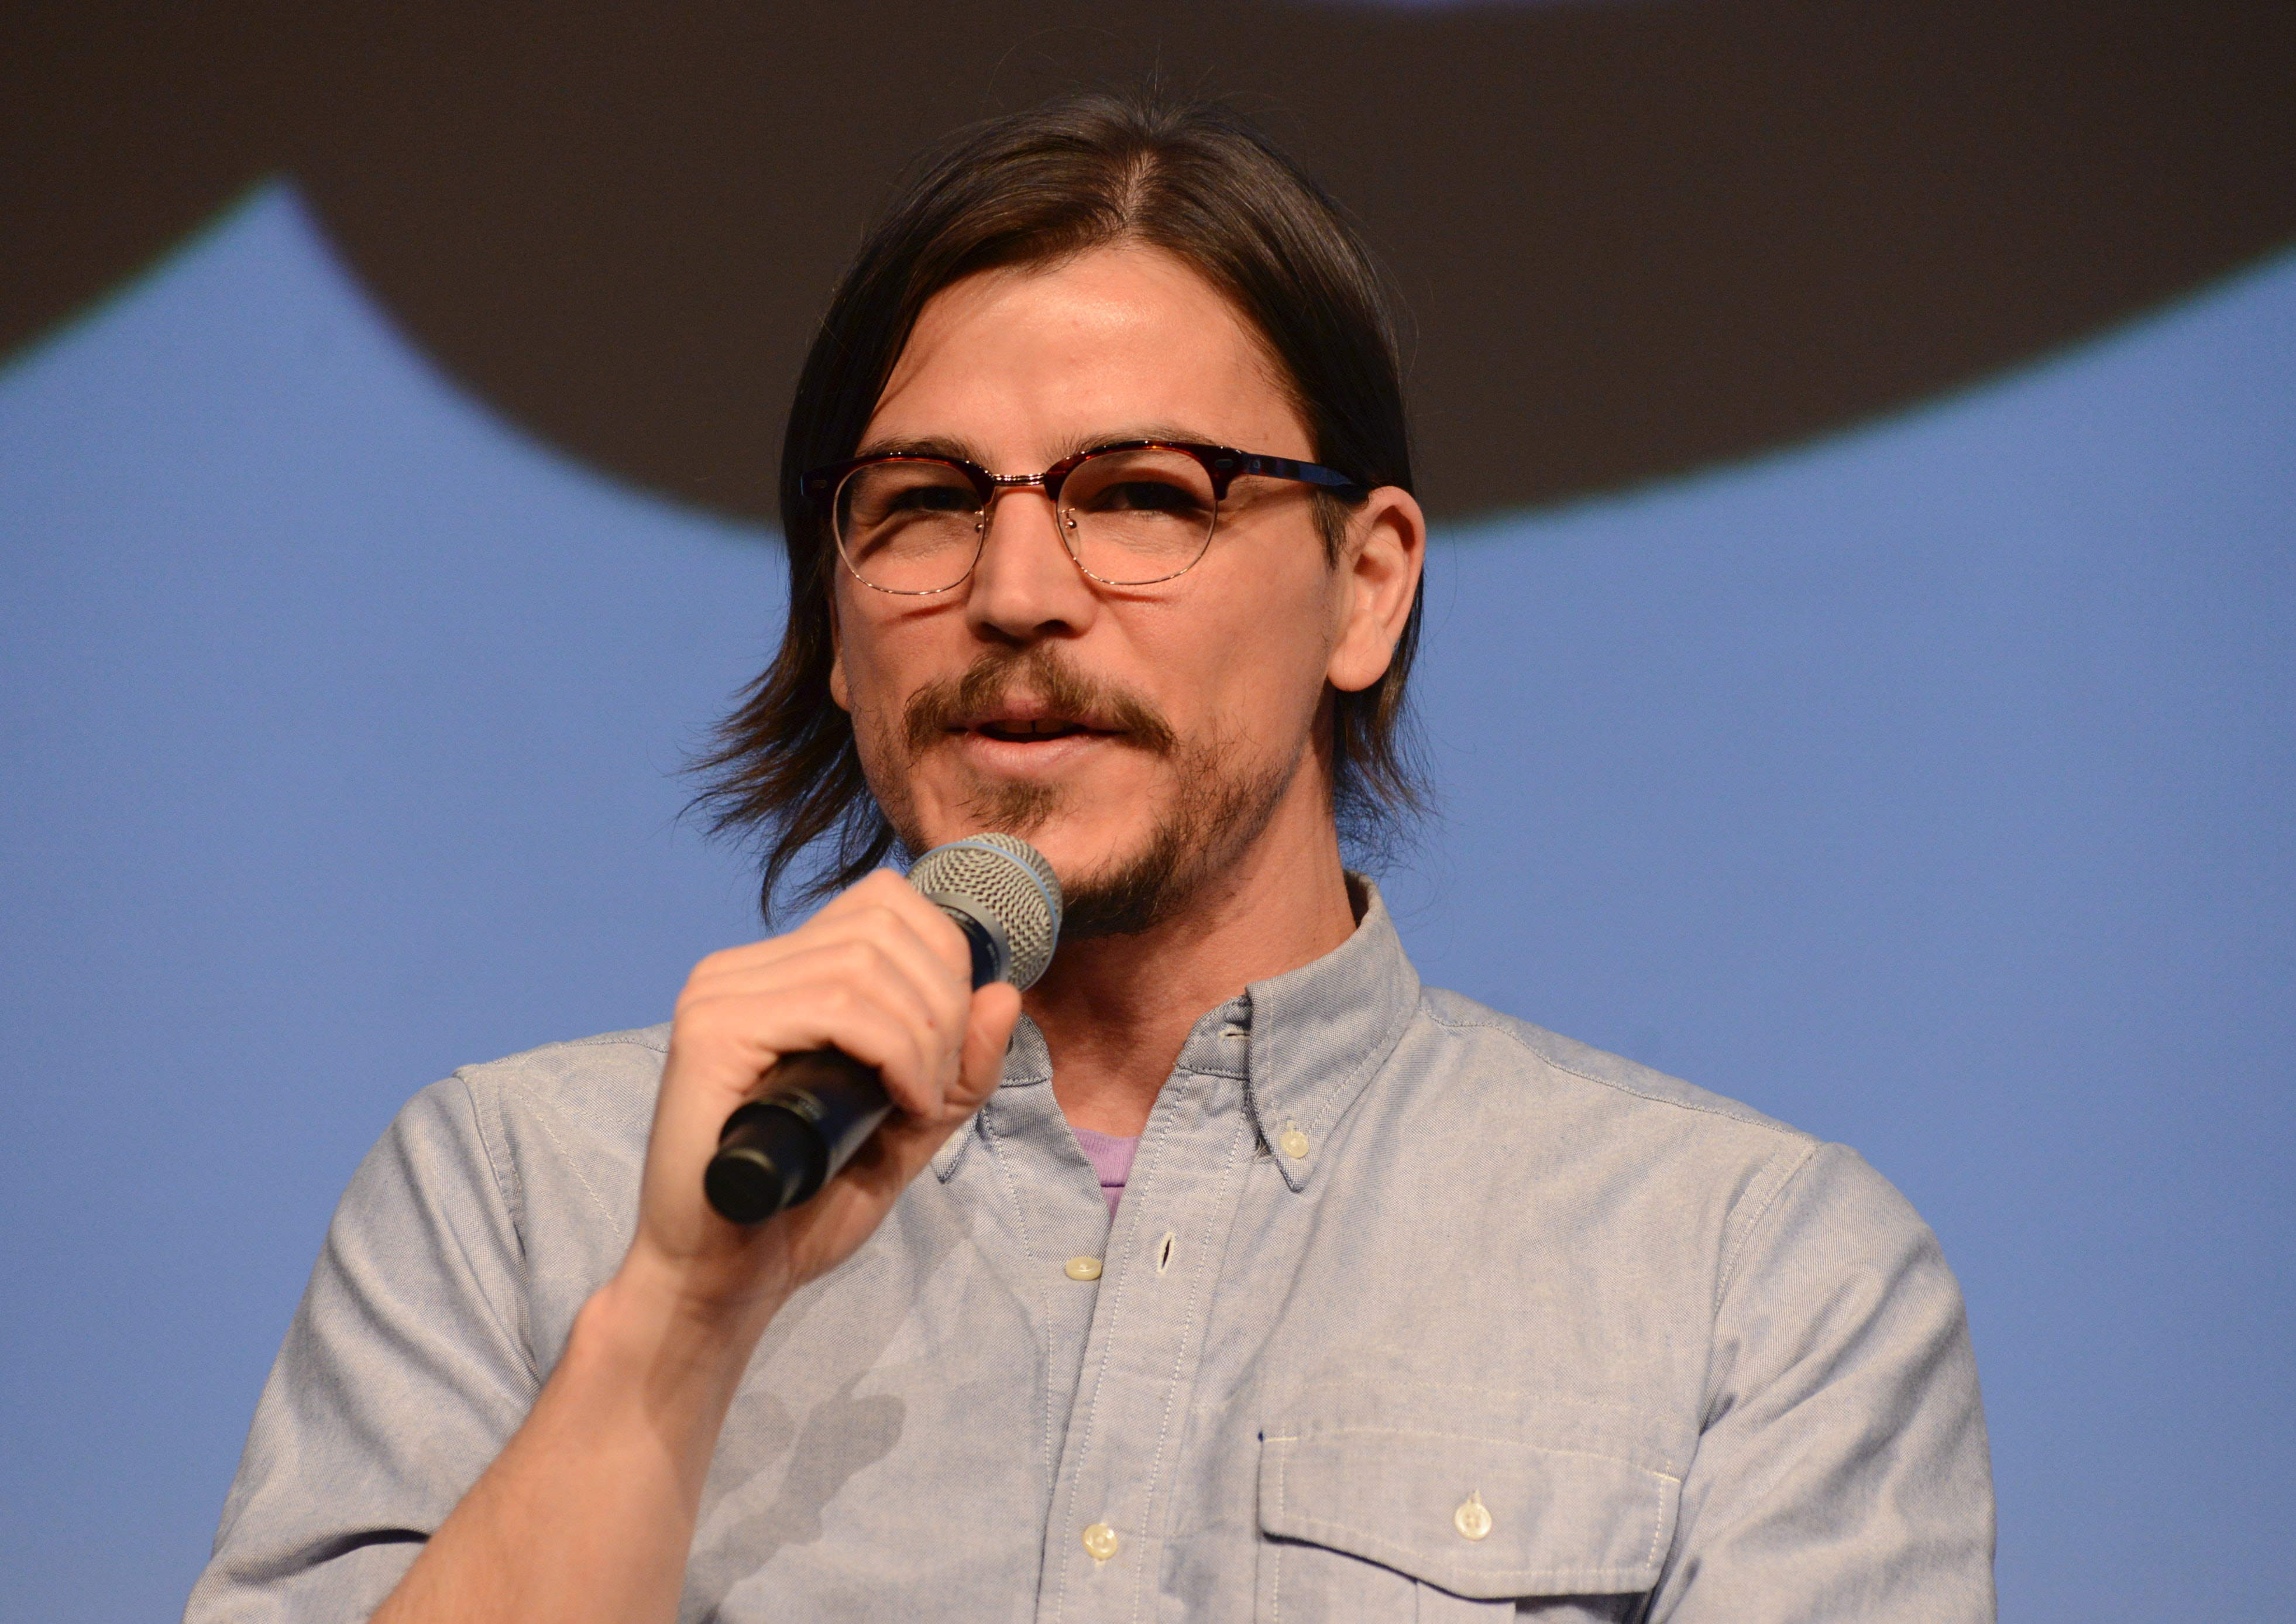 Josh Hartnett The Faculty